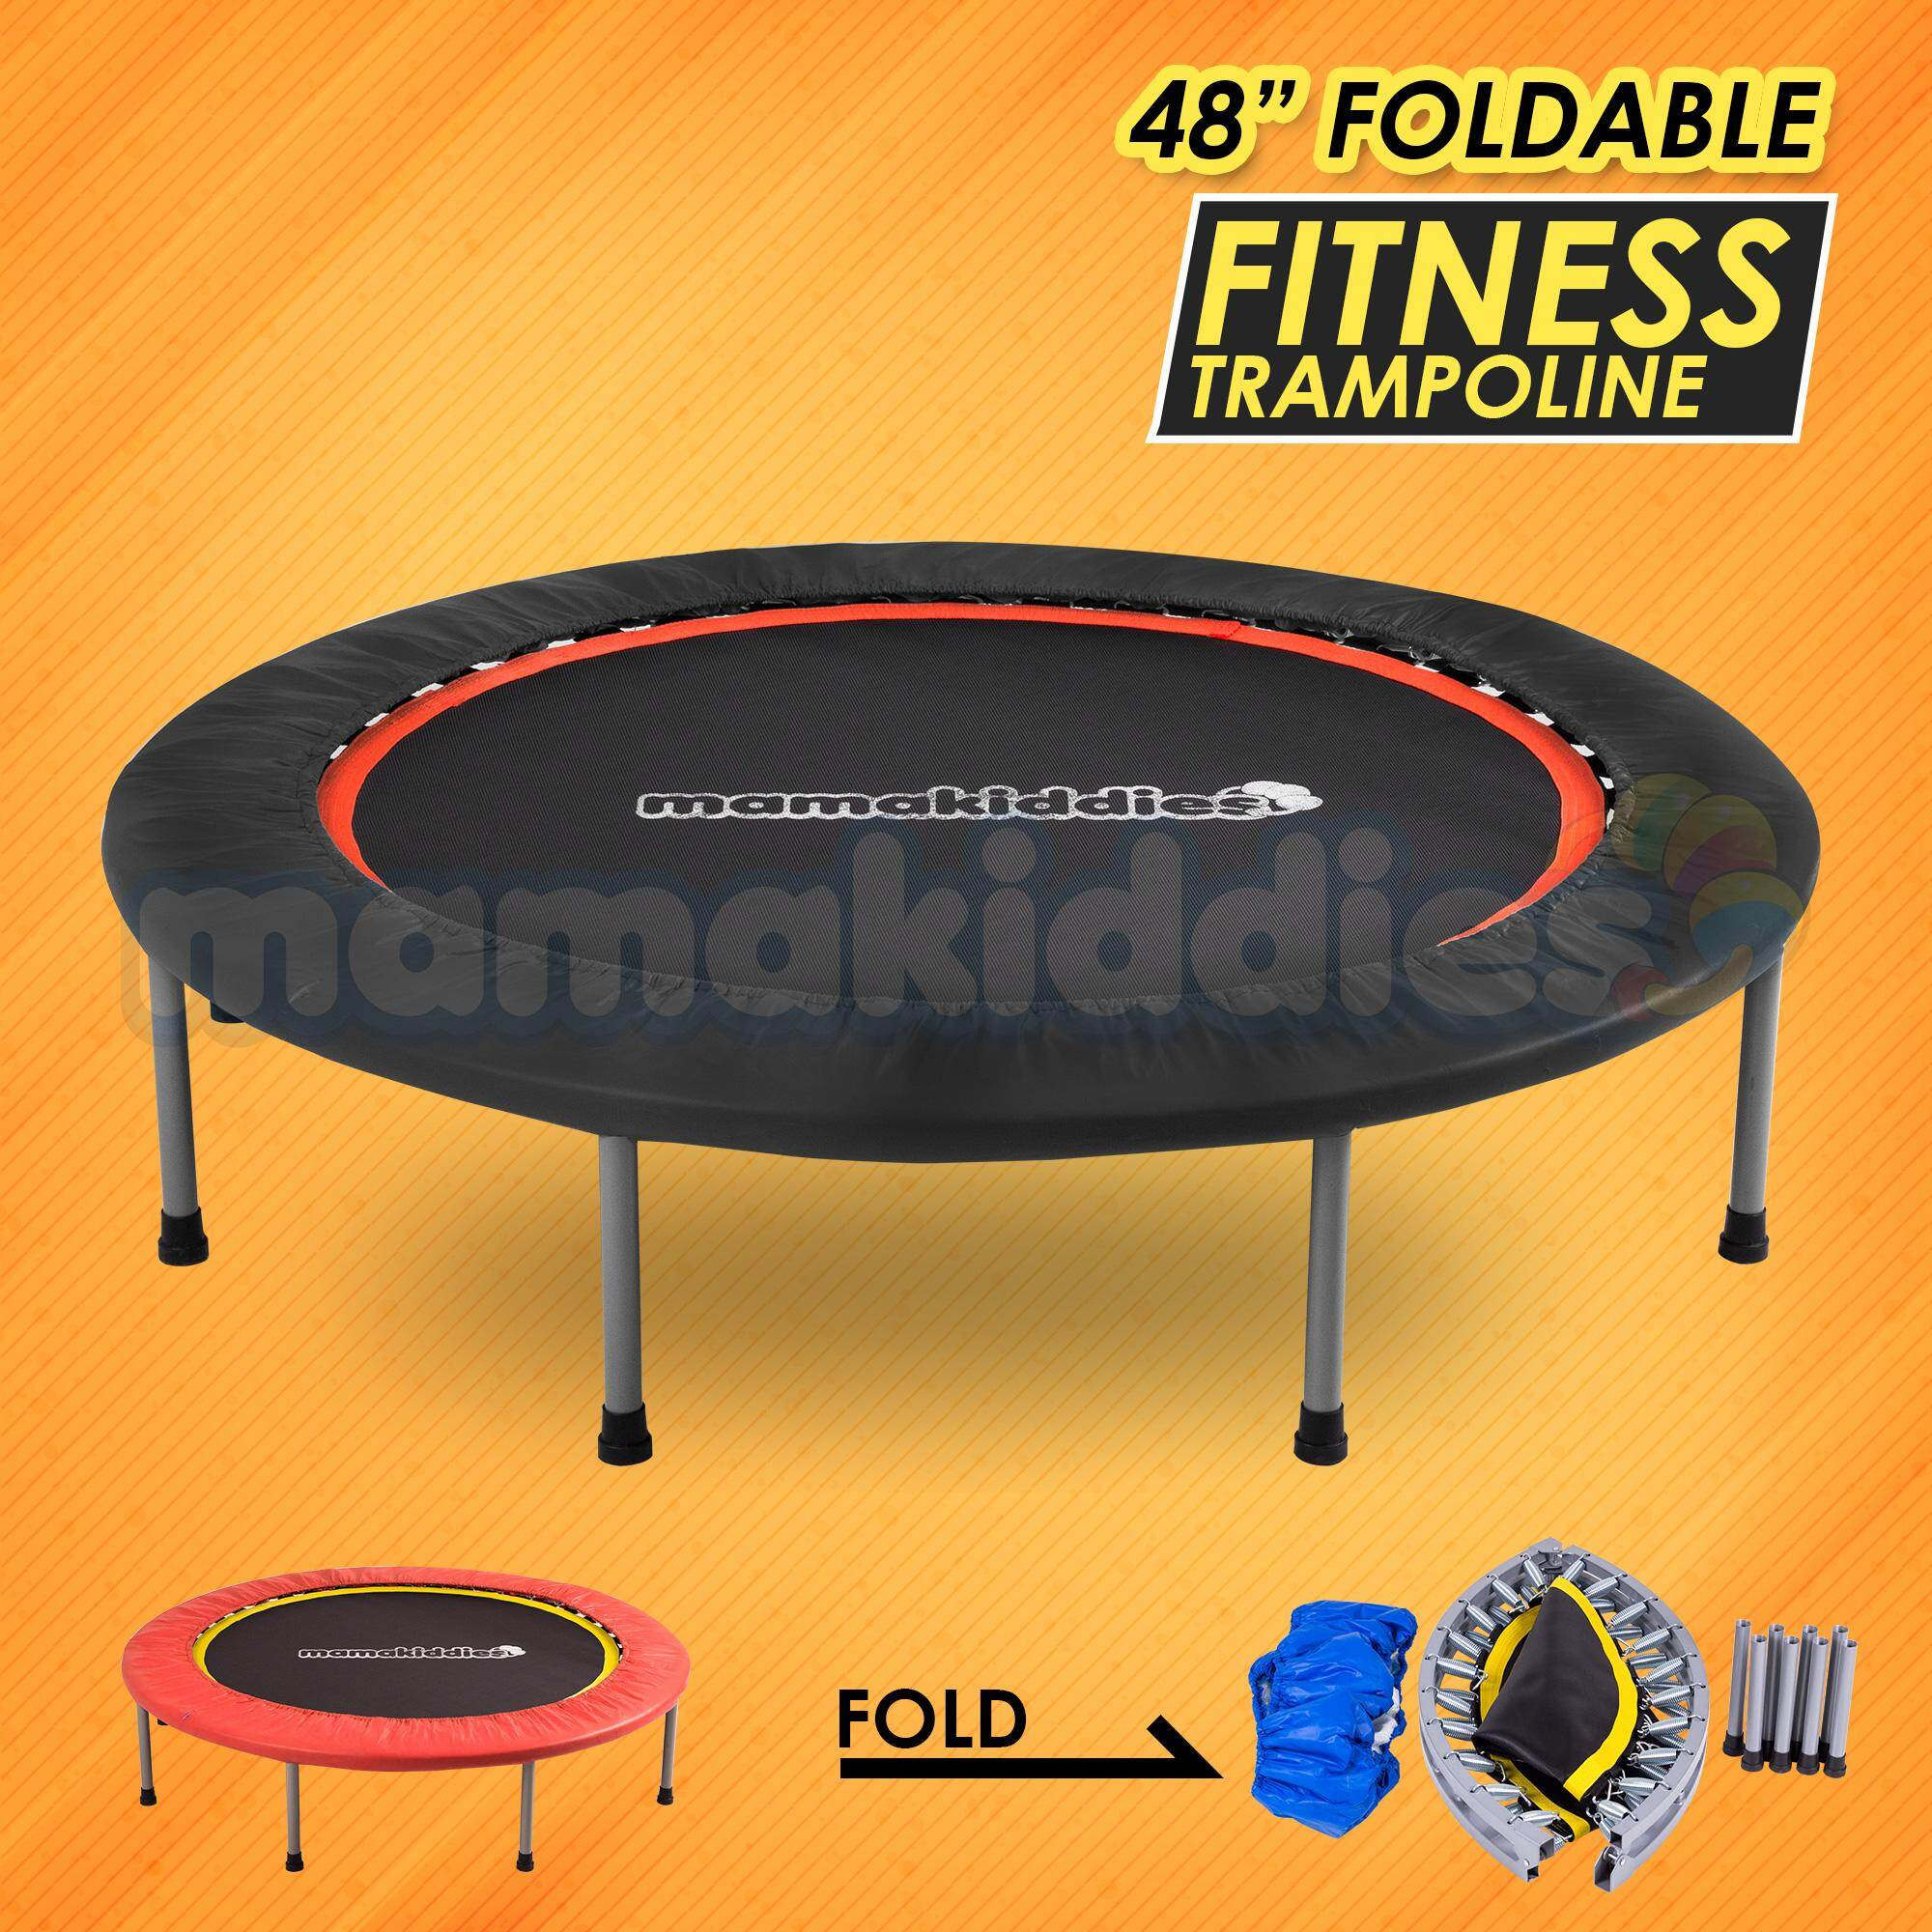 Mamakiddies Premium 48 Inches 4 Folds Foldable Sports Kids & Adult Trampoline Fitness Slimming, Anti Stress, Jumping Bouncer, Physical Therapy For Autism -Black By Mamakiddies